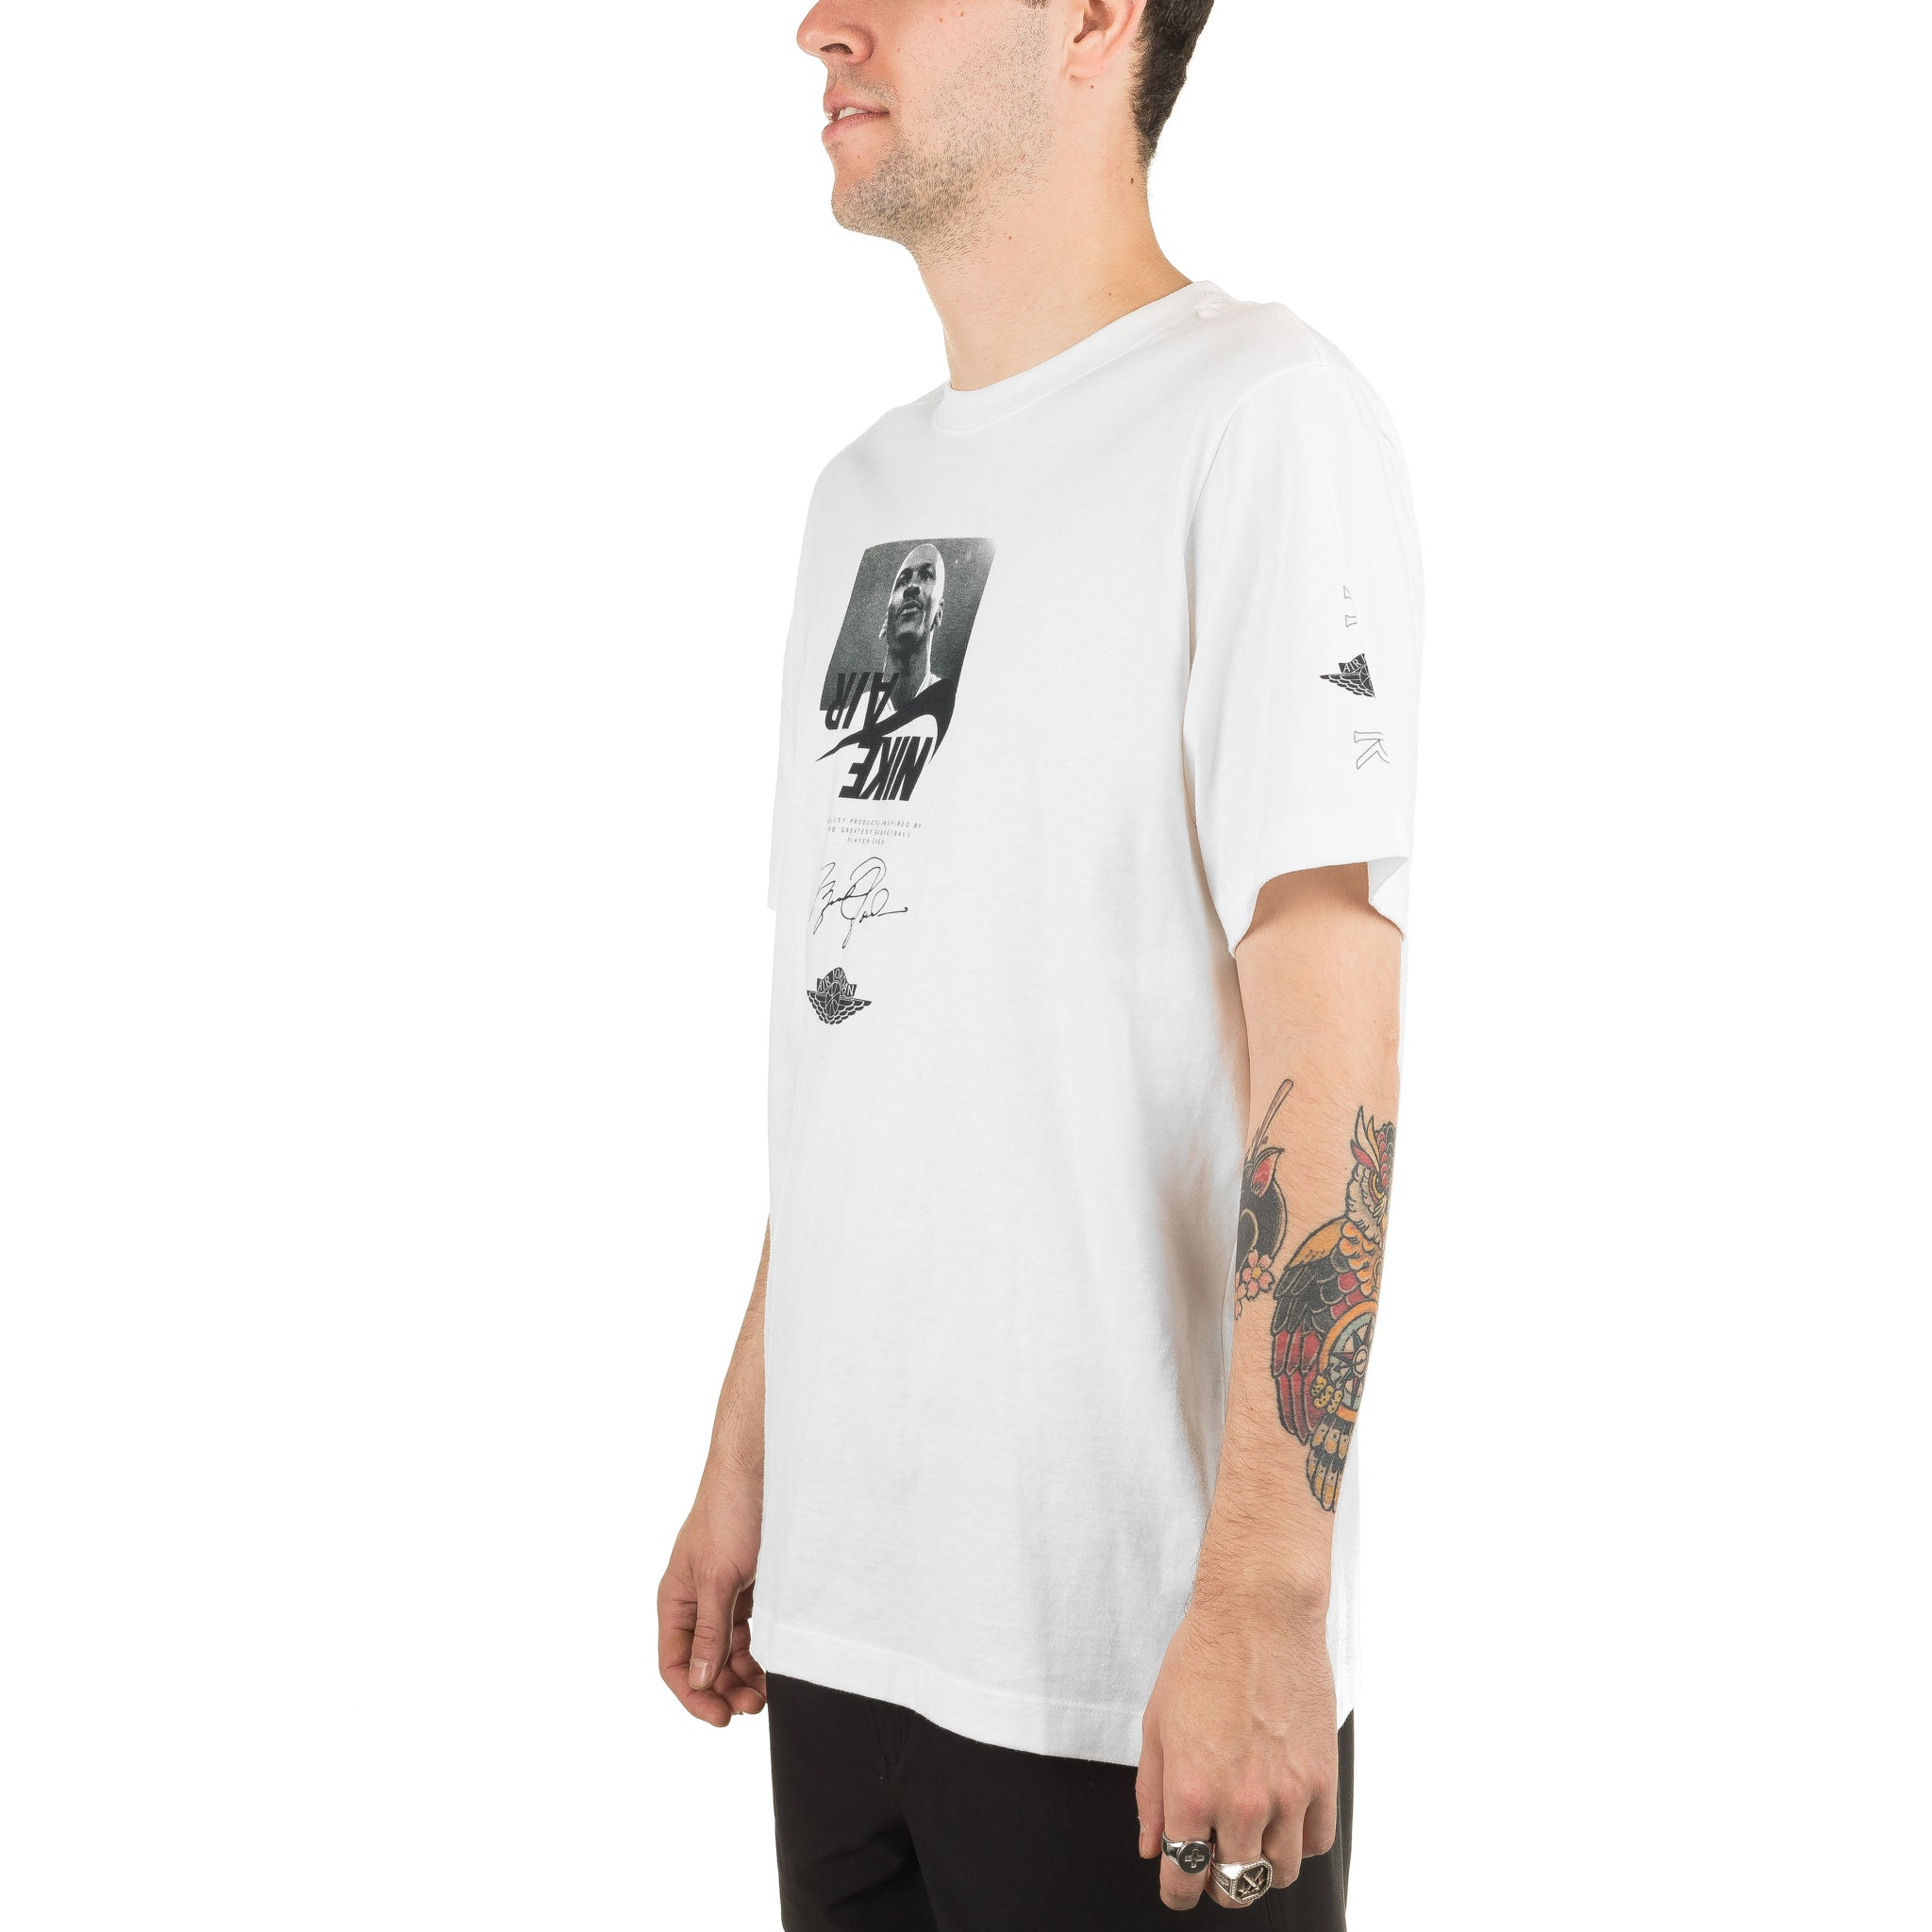 Jordan 'The Man' Tee BQ5554-100 White